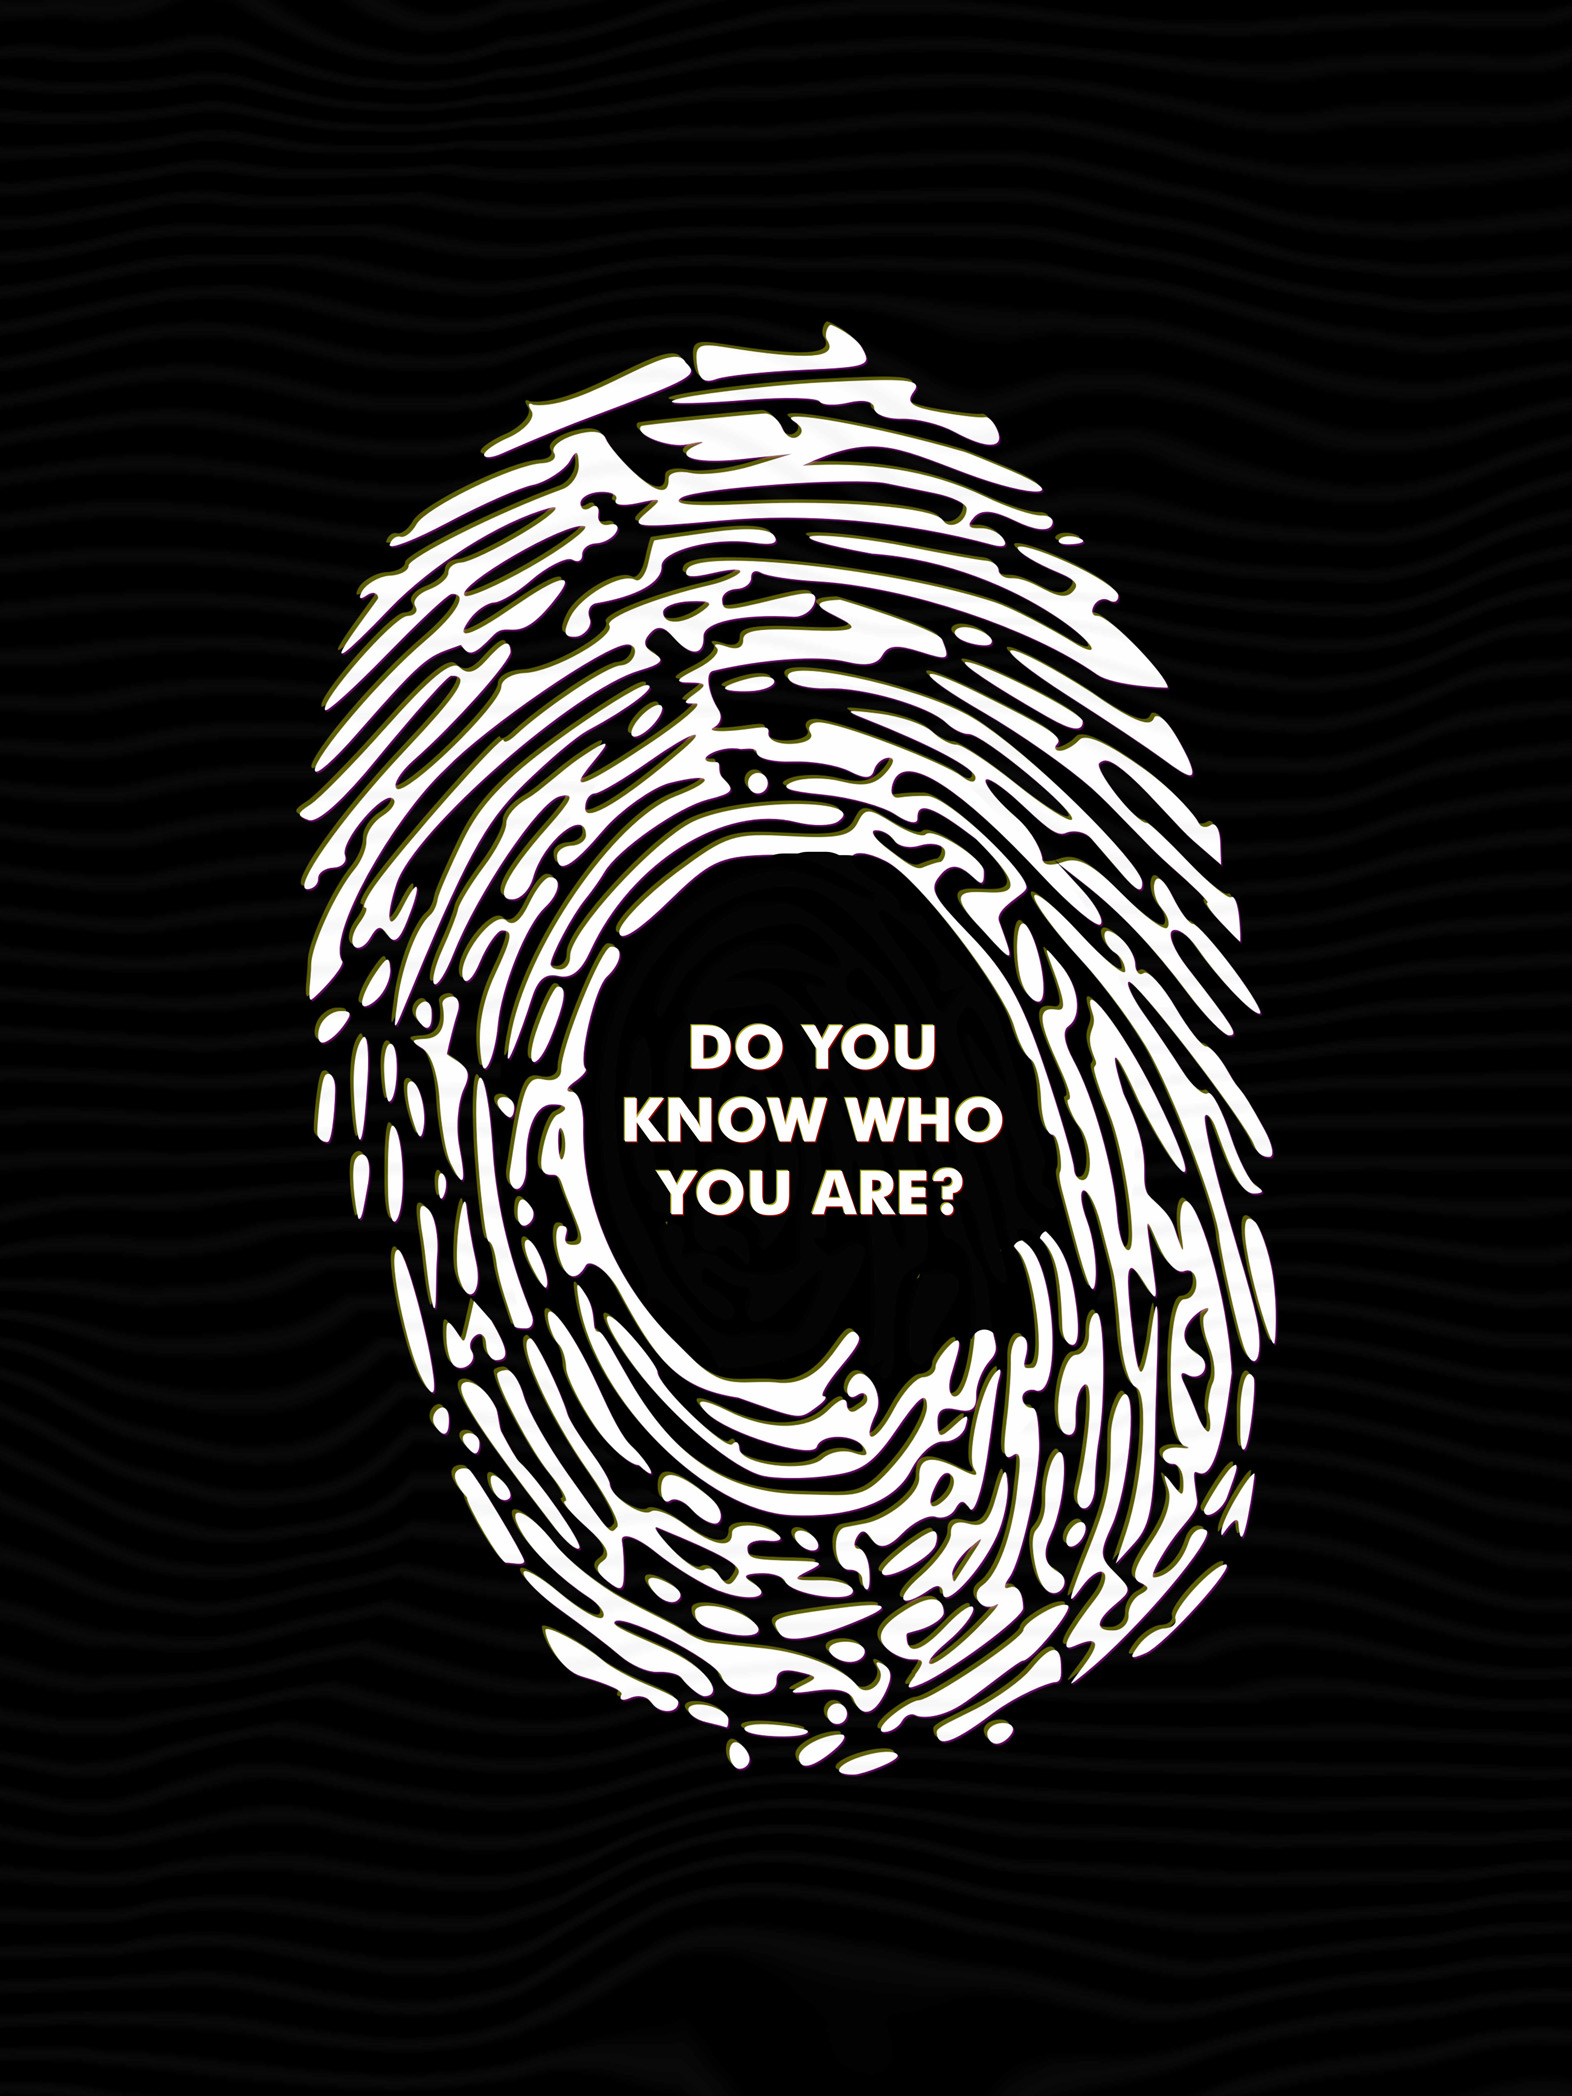 Example of contrast.  Identity  by Samuel J. Stroud. Taken from the  Daily Posters project .